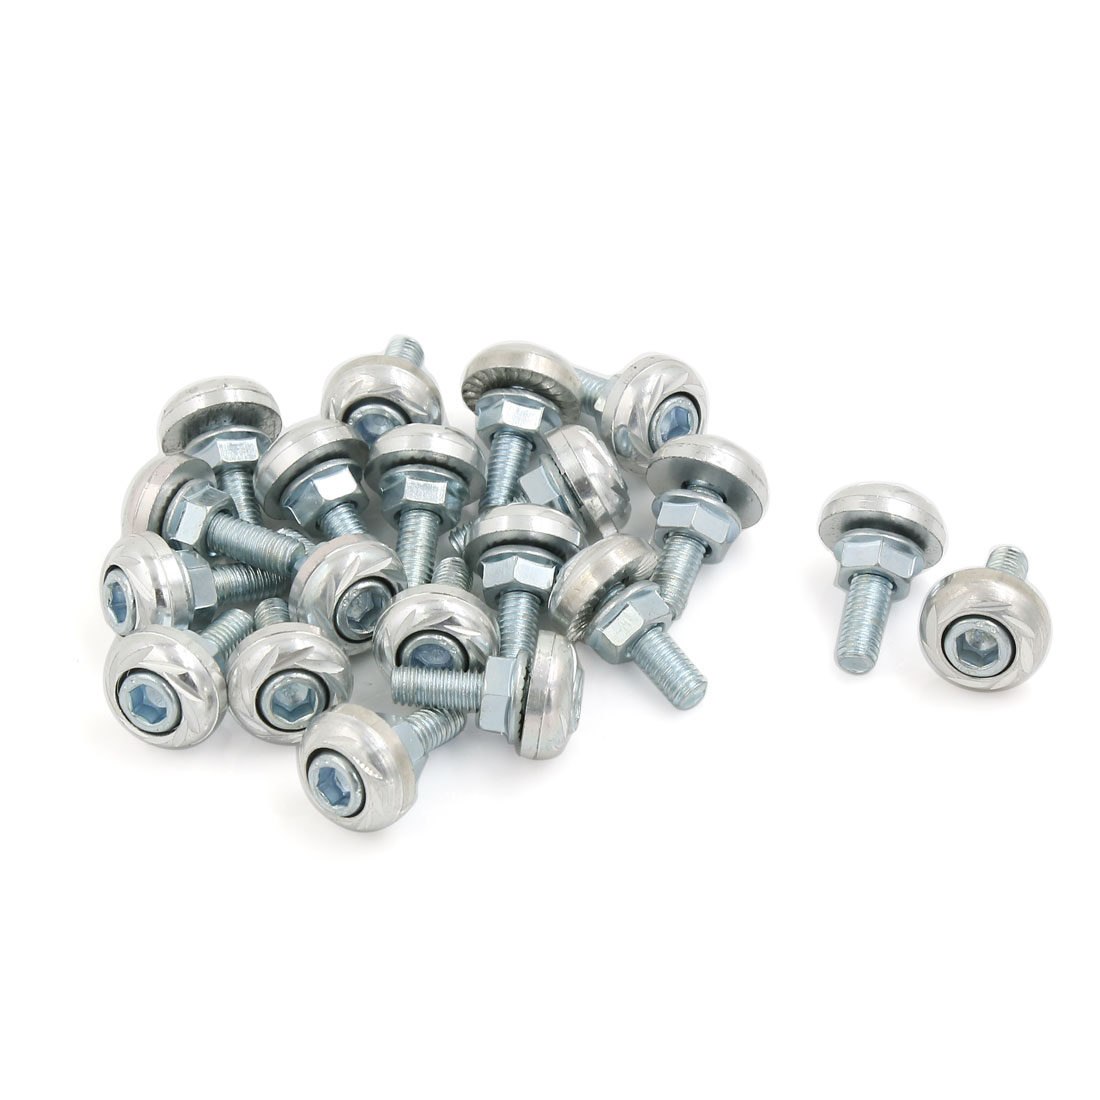 20 Pcs Sliver Tone Car Vehicle License Number Plate Bolts Screws 25mm Length